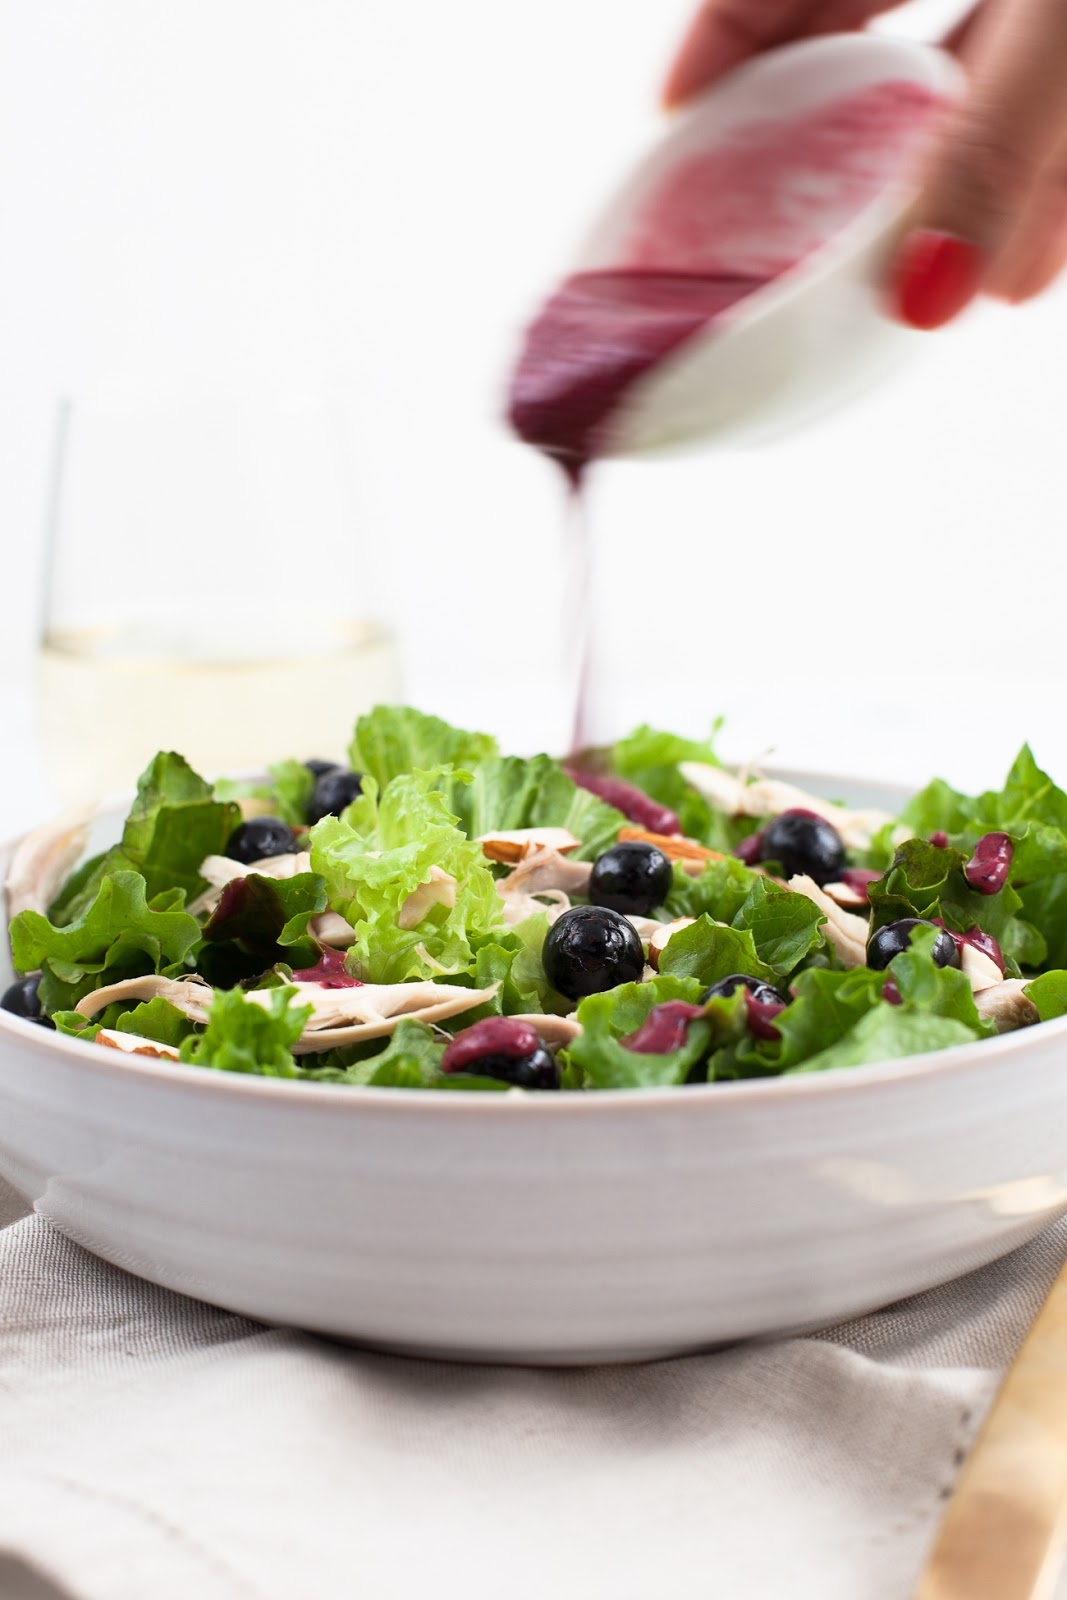 Blueberry Chicken Salad with Berry vinaigrette / blog.jchongstudio.com